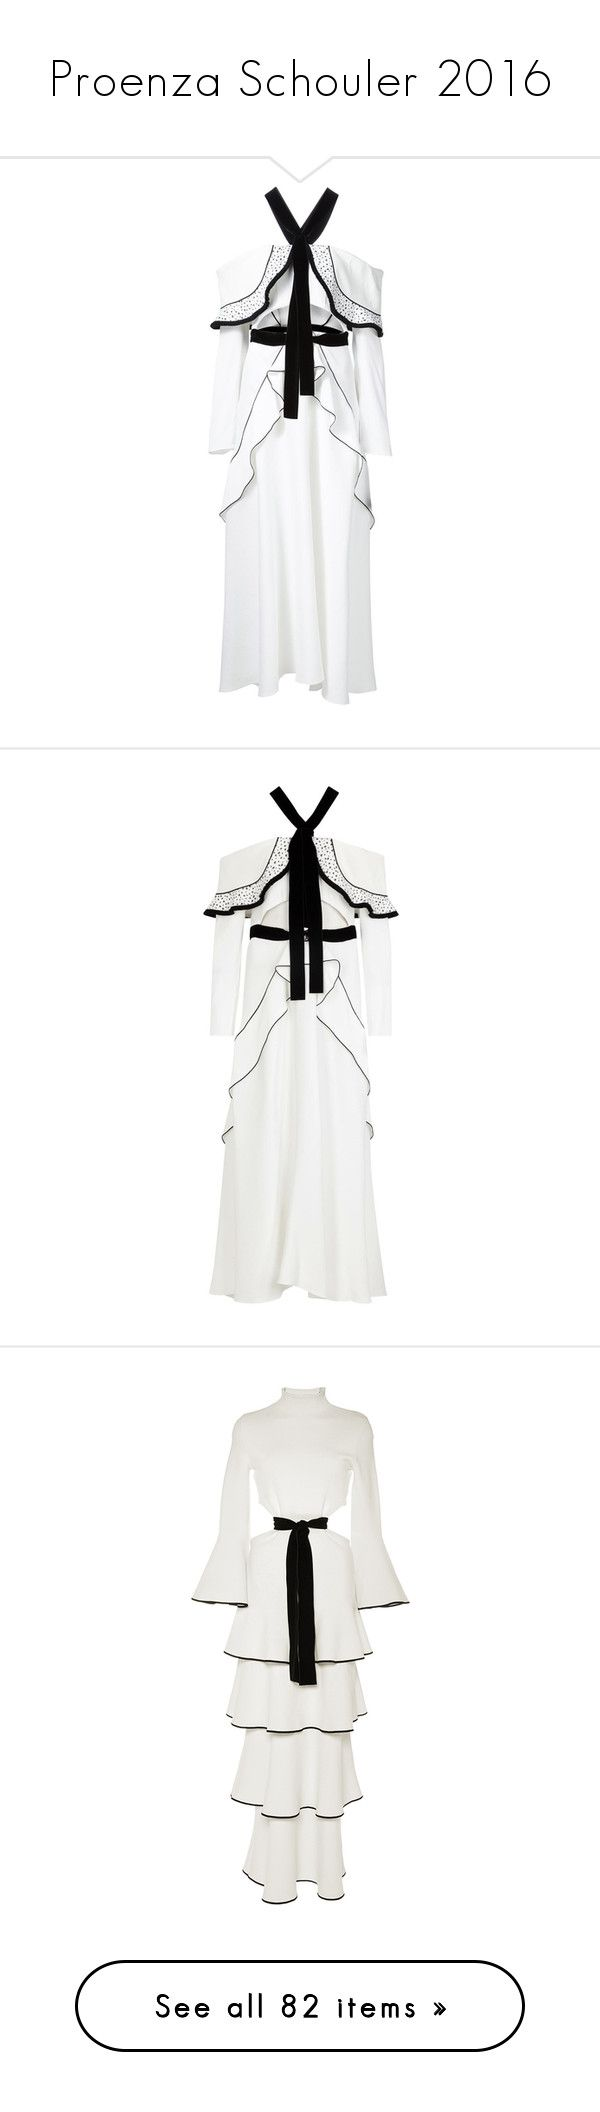 """""""Proenza Schouler 2016"""" by sella103 ❤ liked on Polyvore featuring dresses, white, long sleeve dresses, off shoulder dress, white cut out dress, white ruffle dress, ruffle dress, cutout dresses, circle skirt and white off the shoulder dress"""